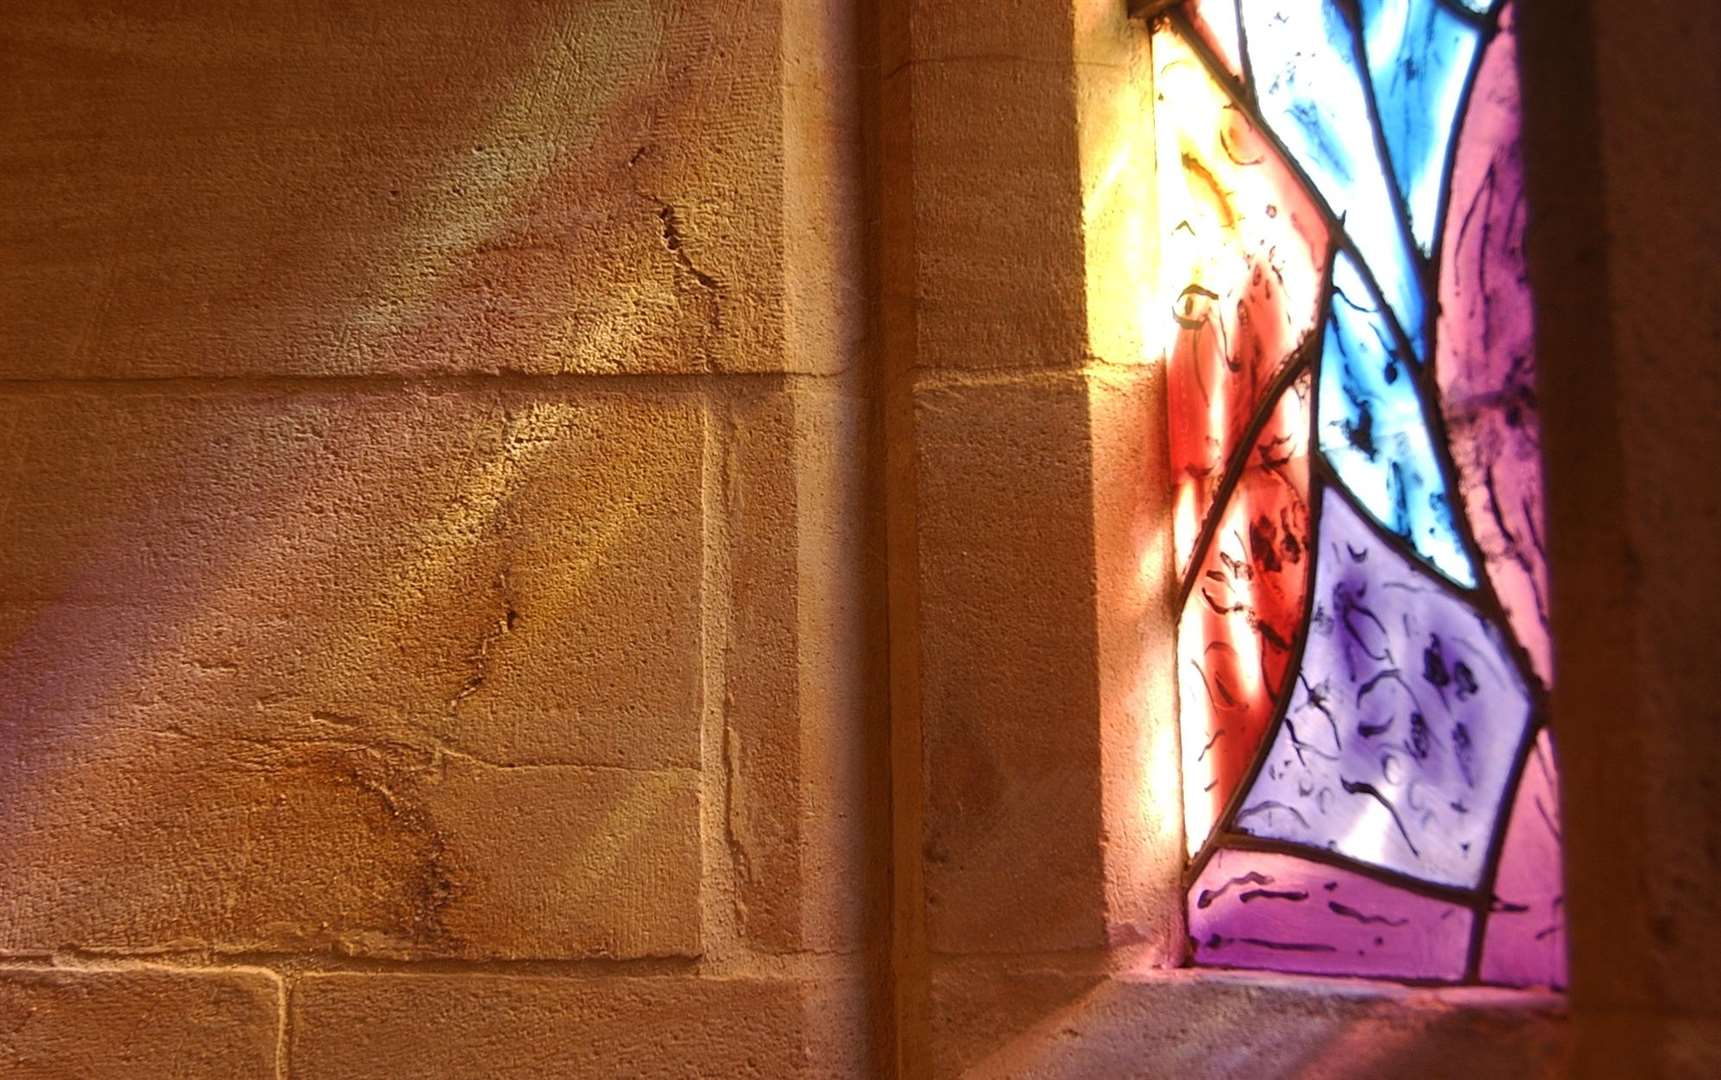 The Chagal stained glass windows at Tudeley church are inspiration for one of the concerts